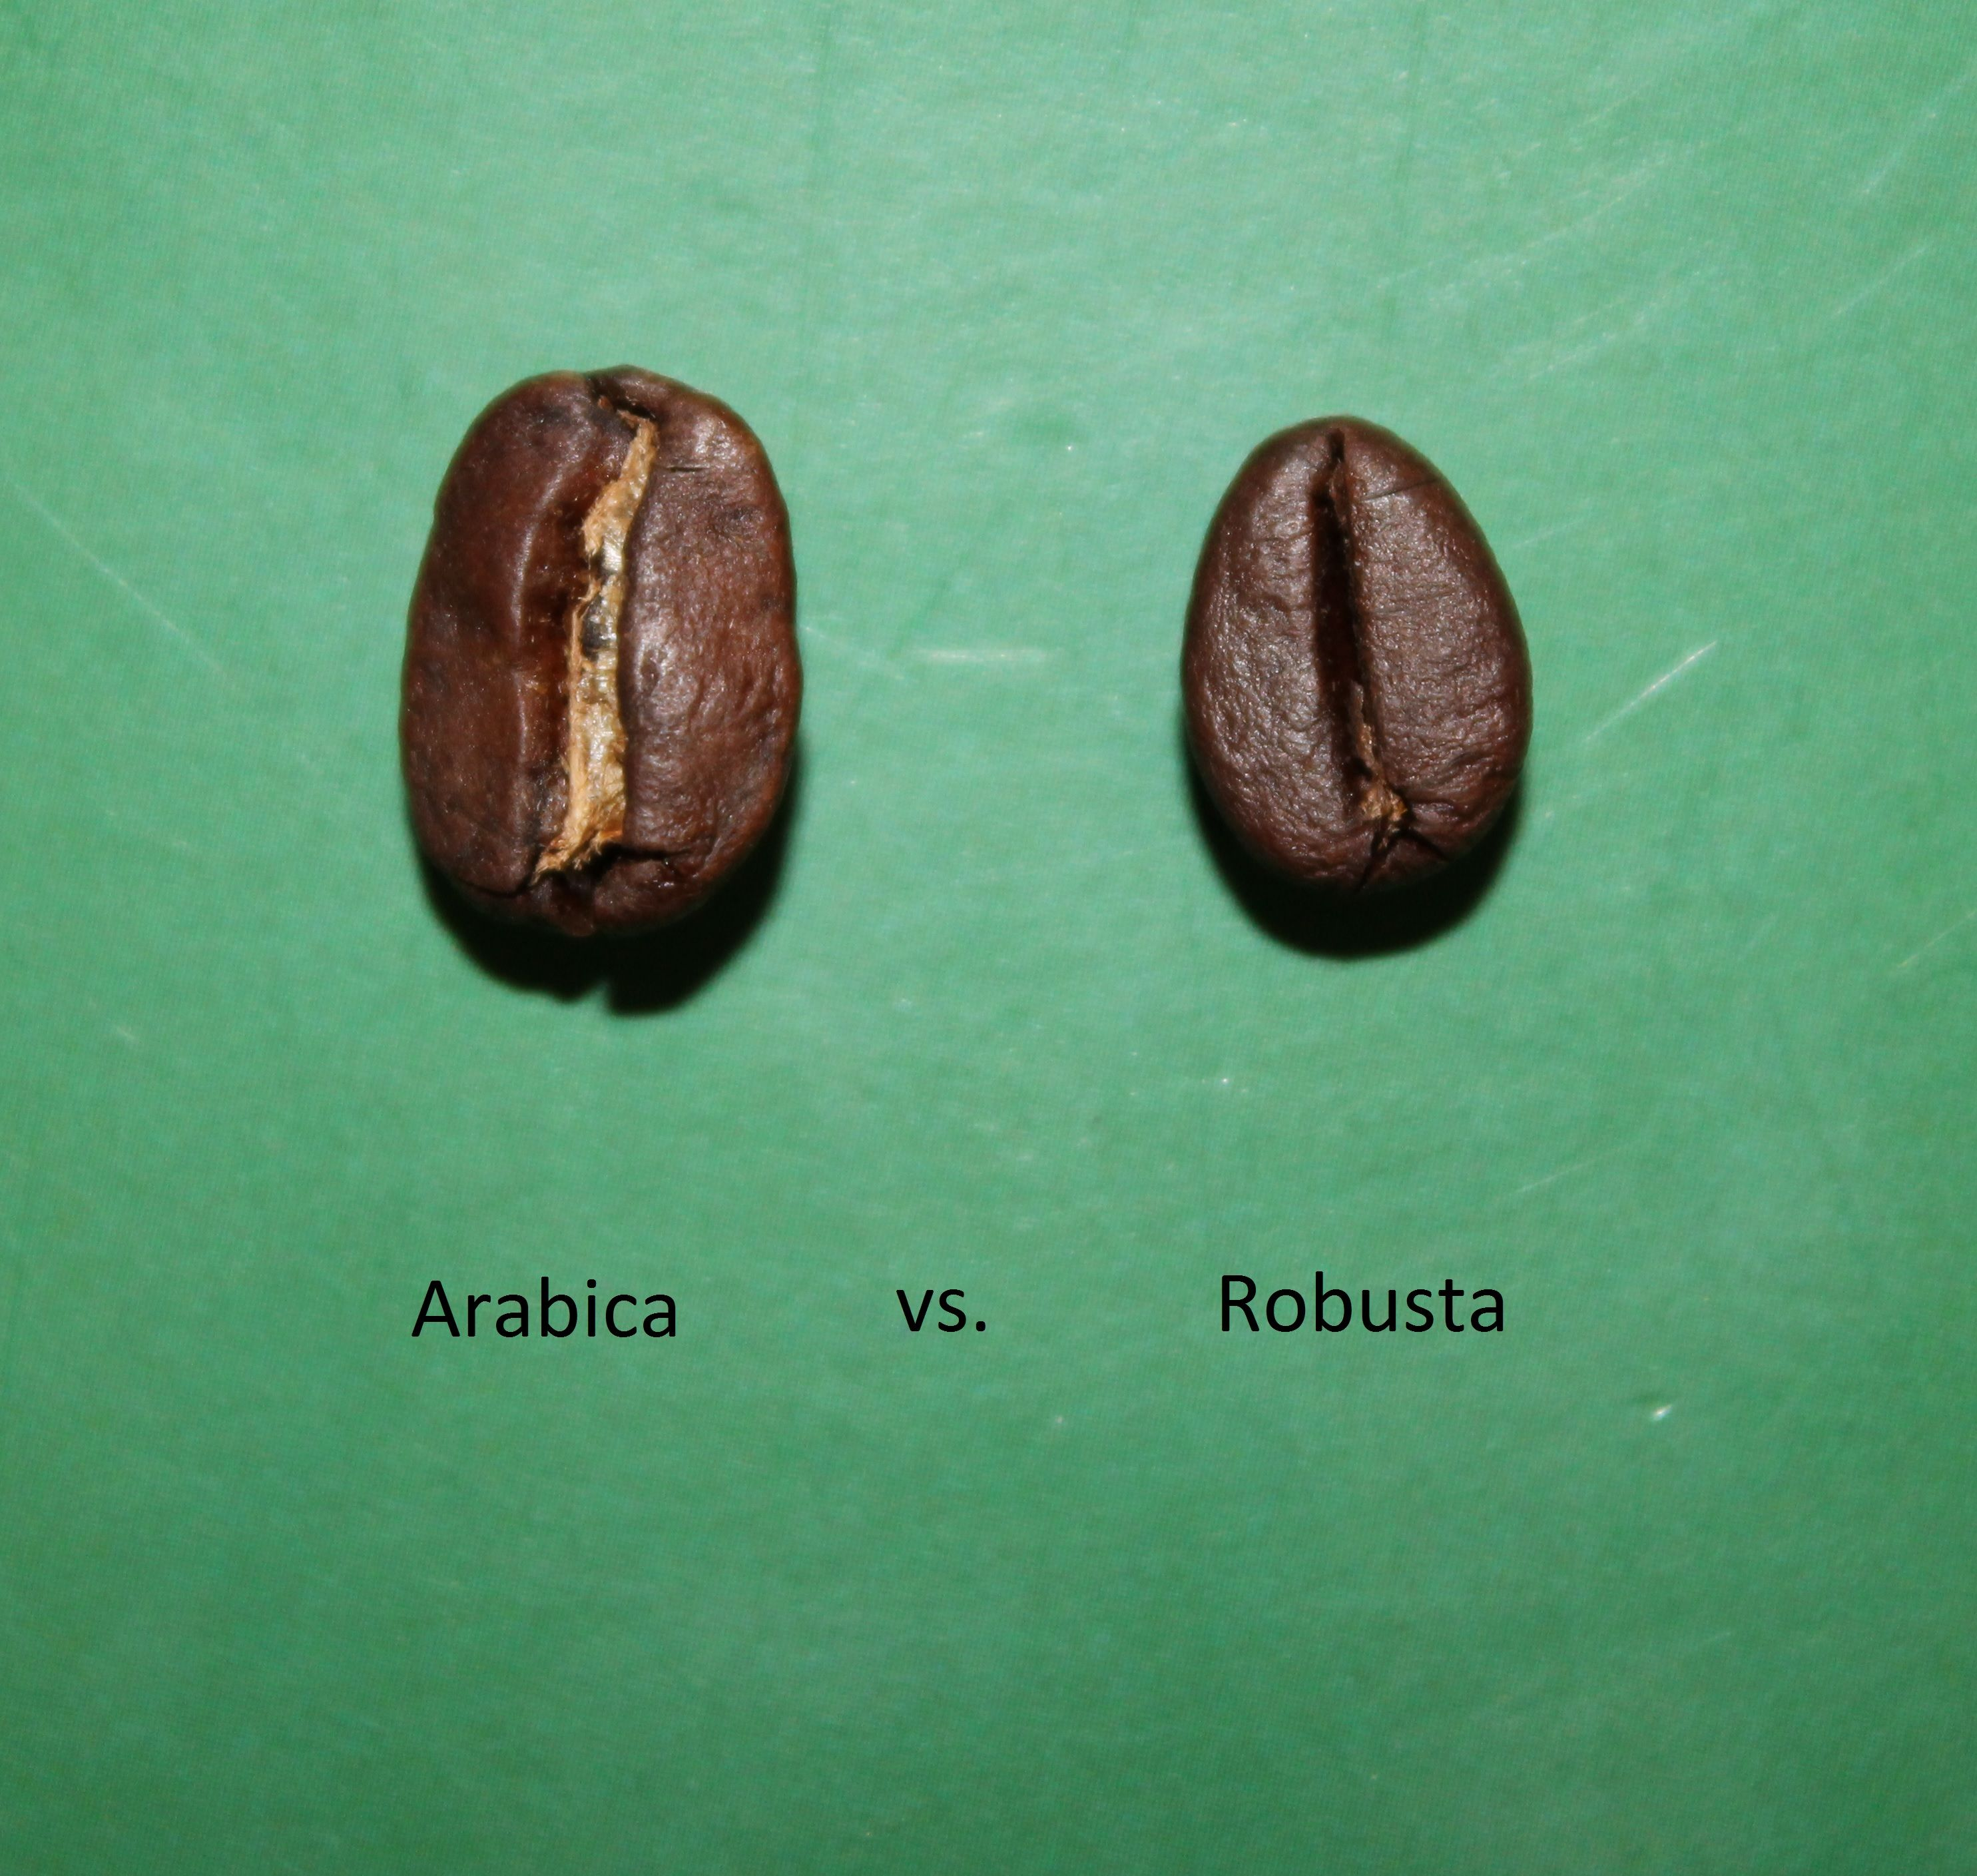 Robusta Vs Arabica Light Coffee In 2018 Pinterest Kopi Organik By Teungku Aceh Nad Type I Love Italian Roasting